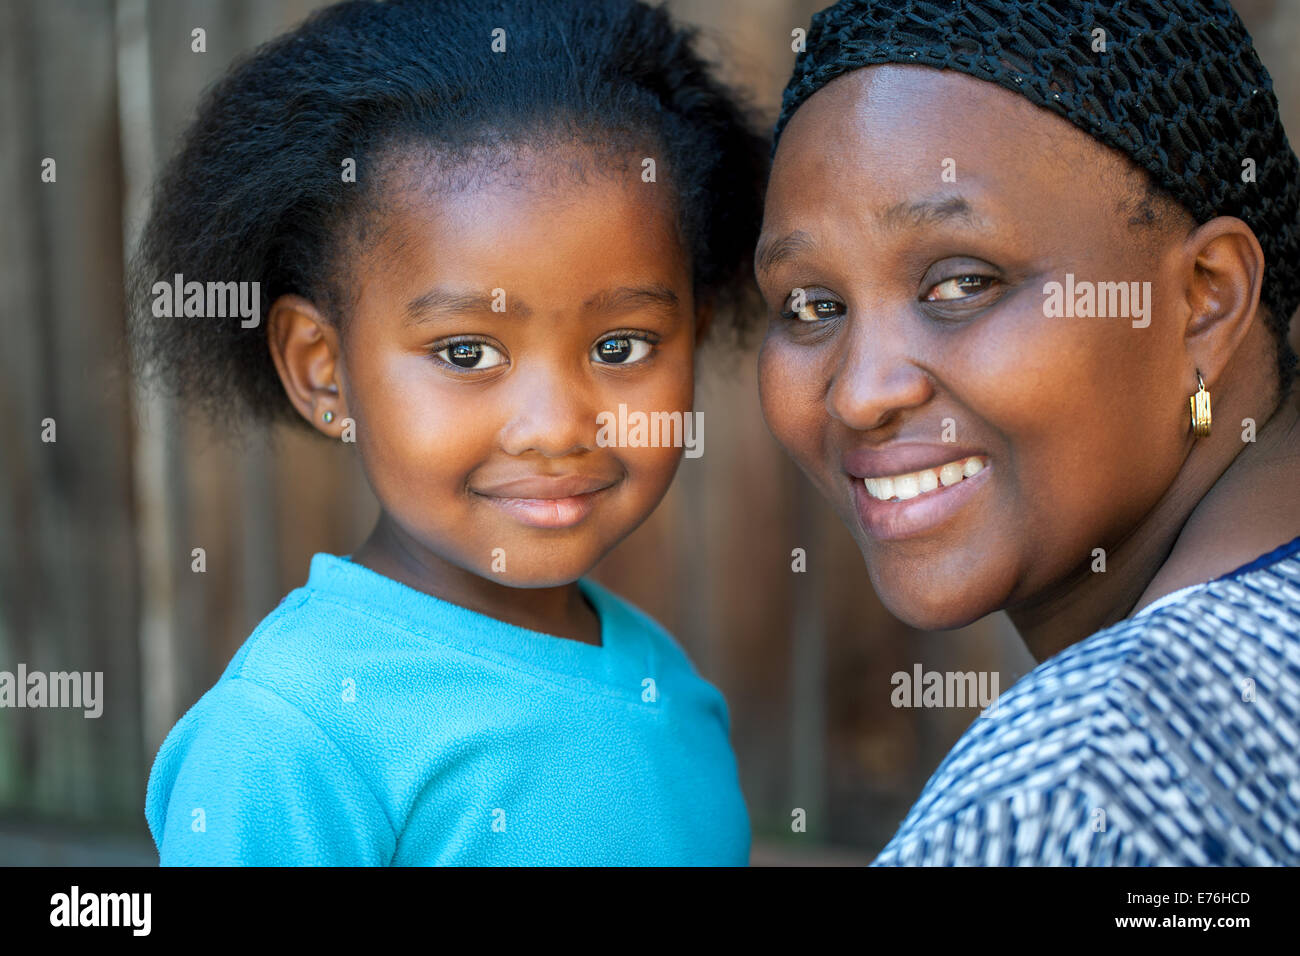 Face shot of little African girl with mom outdoors. - Stock Image